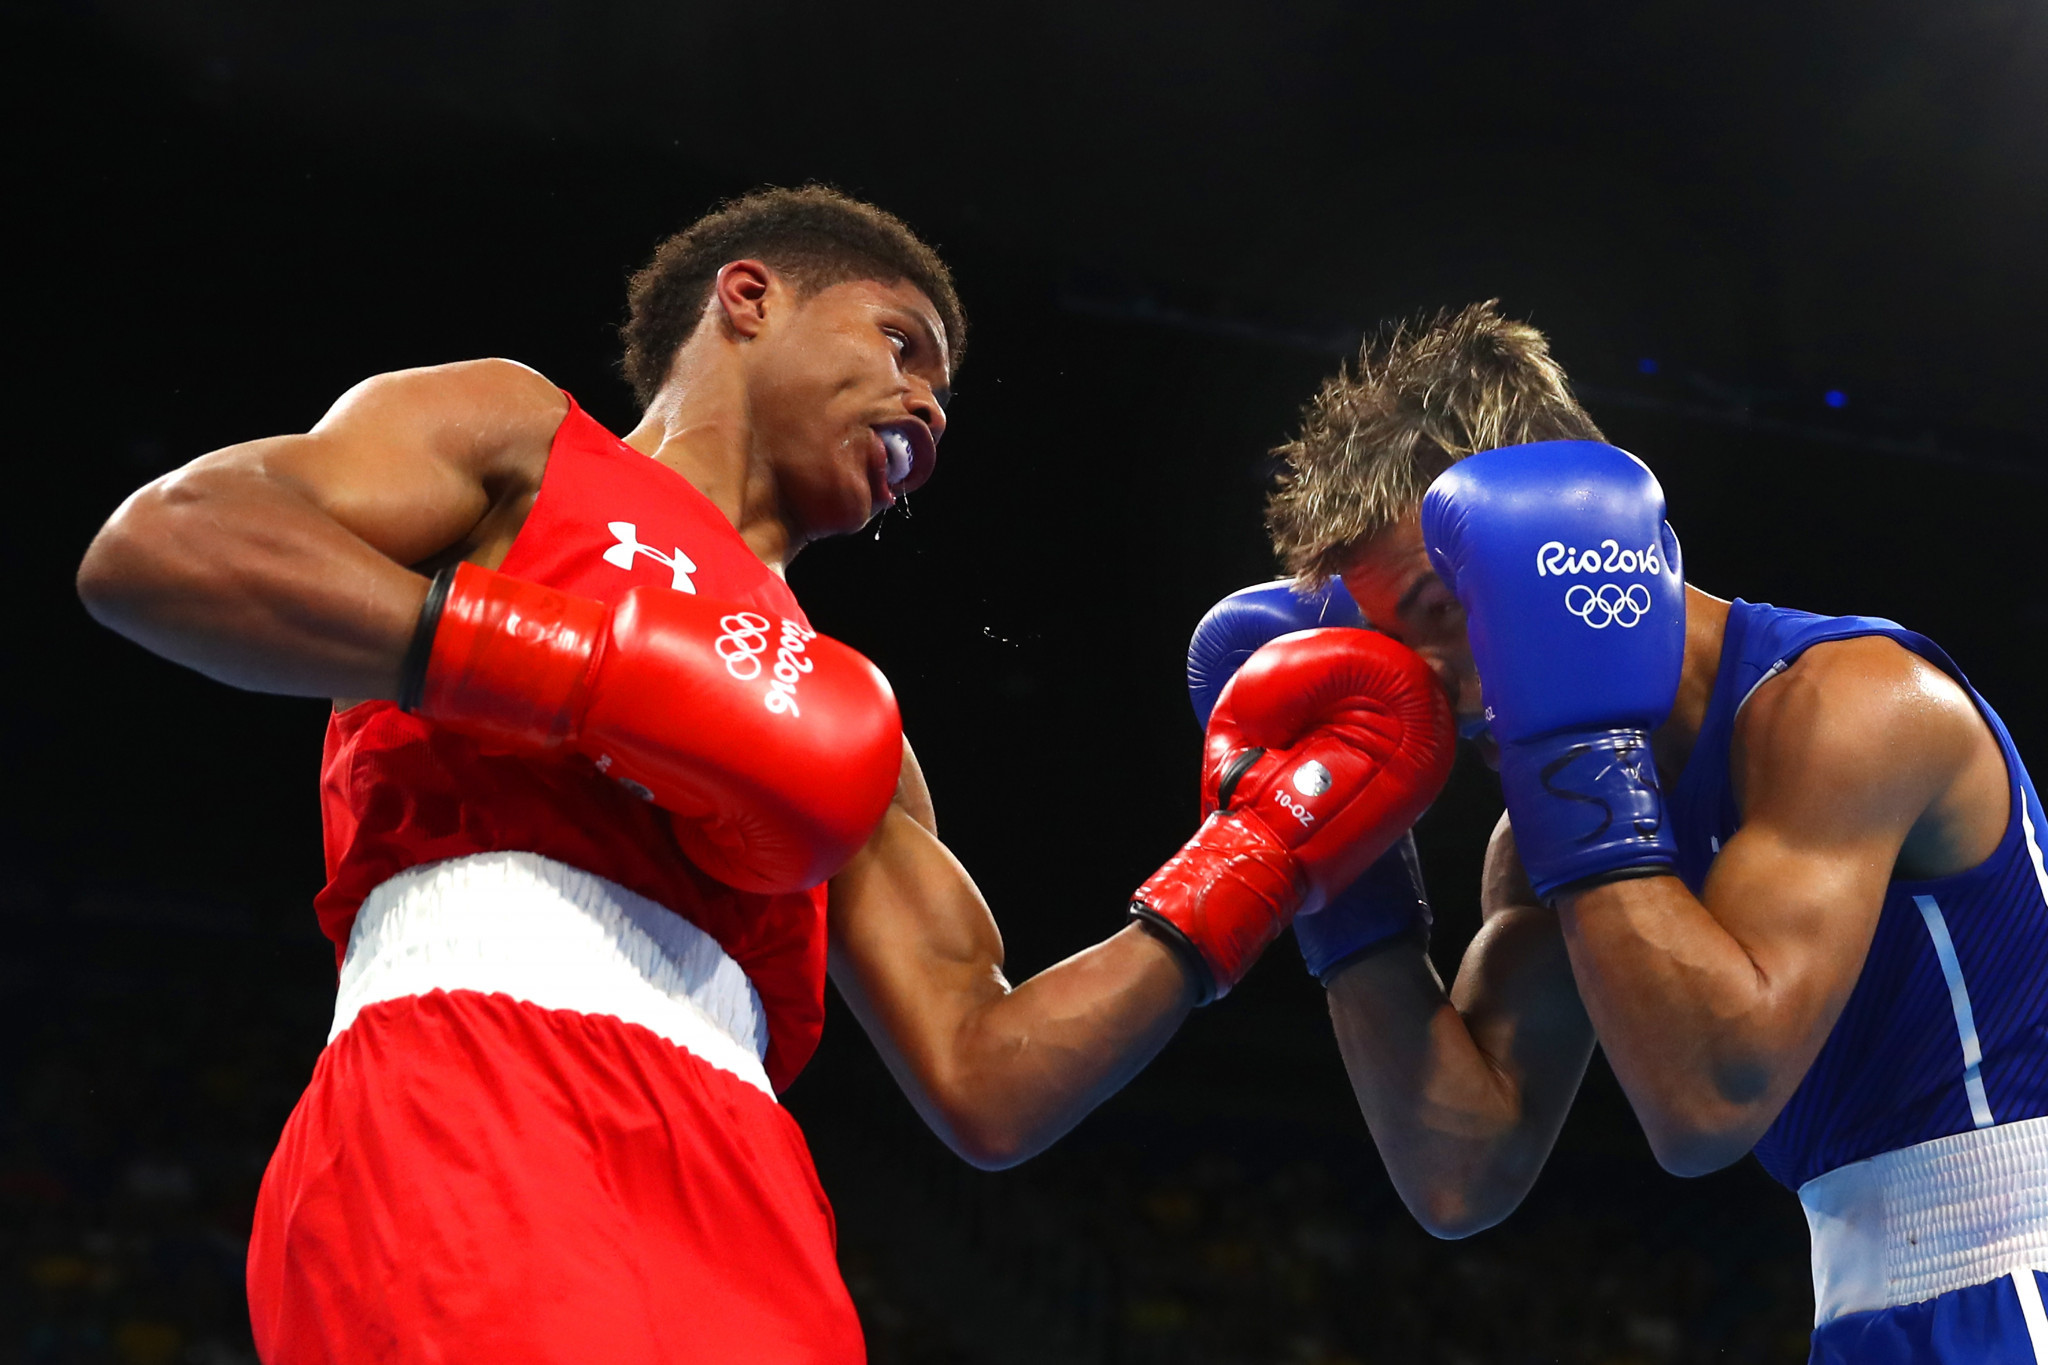 Boxing's place at the Olympic Games remains in doubt ©Getty Images